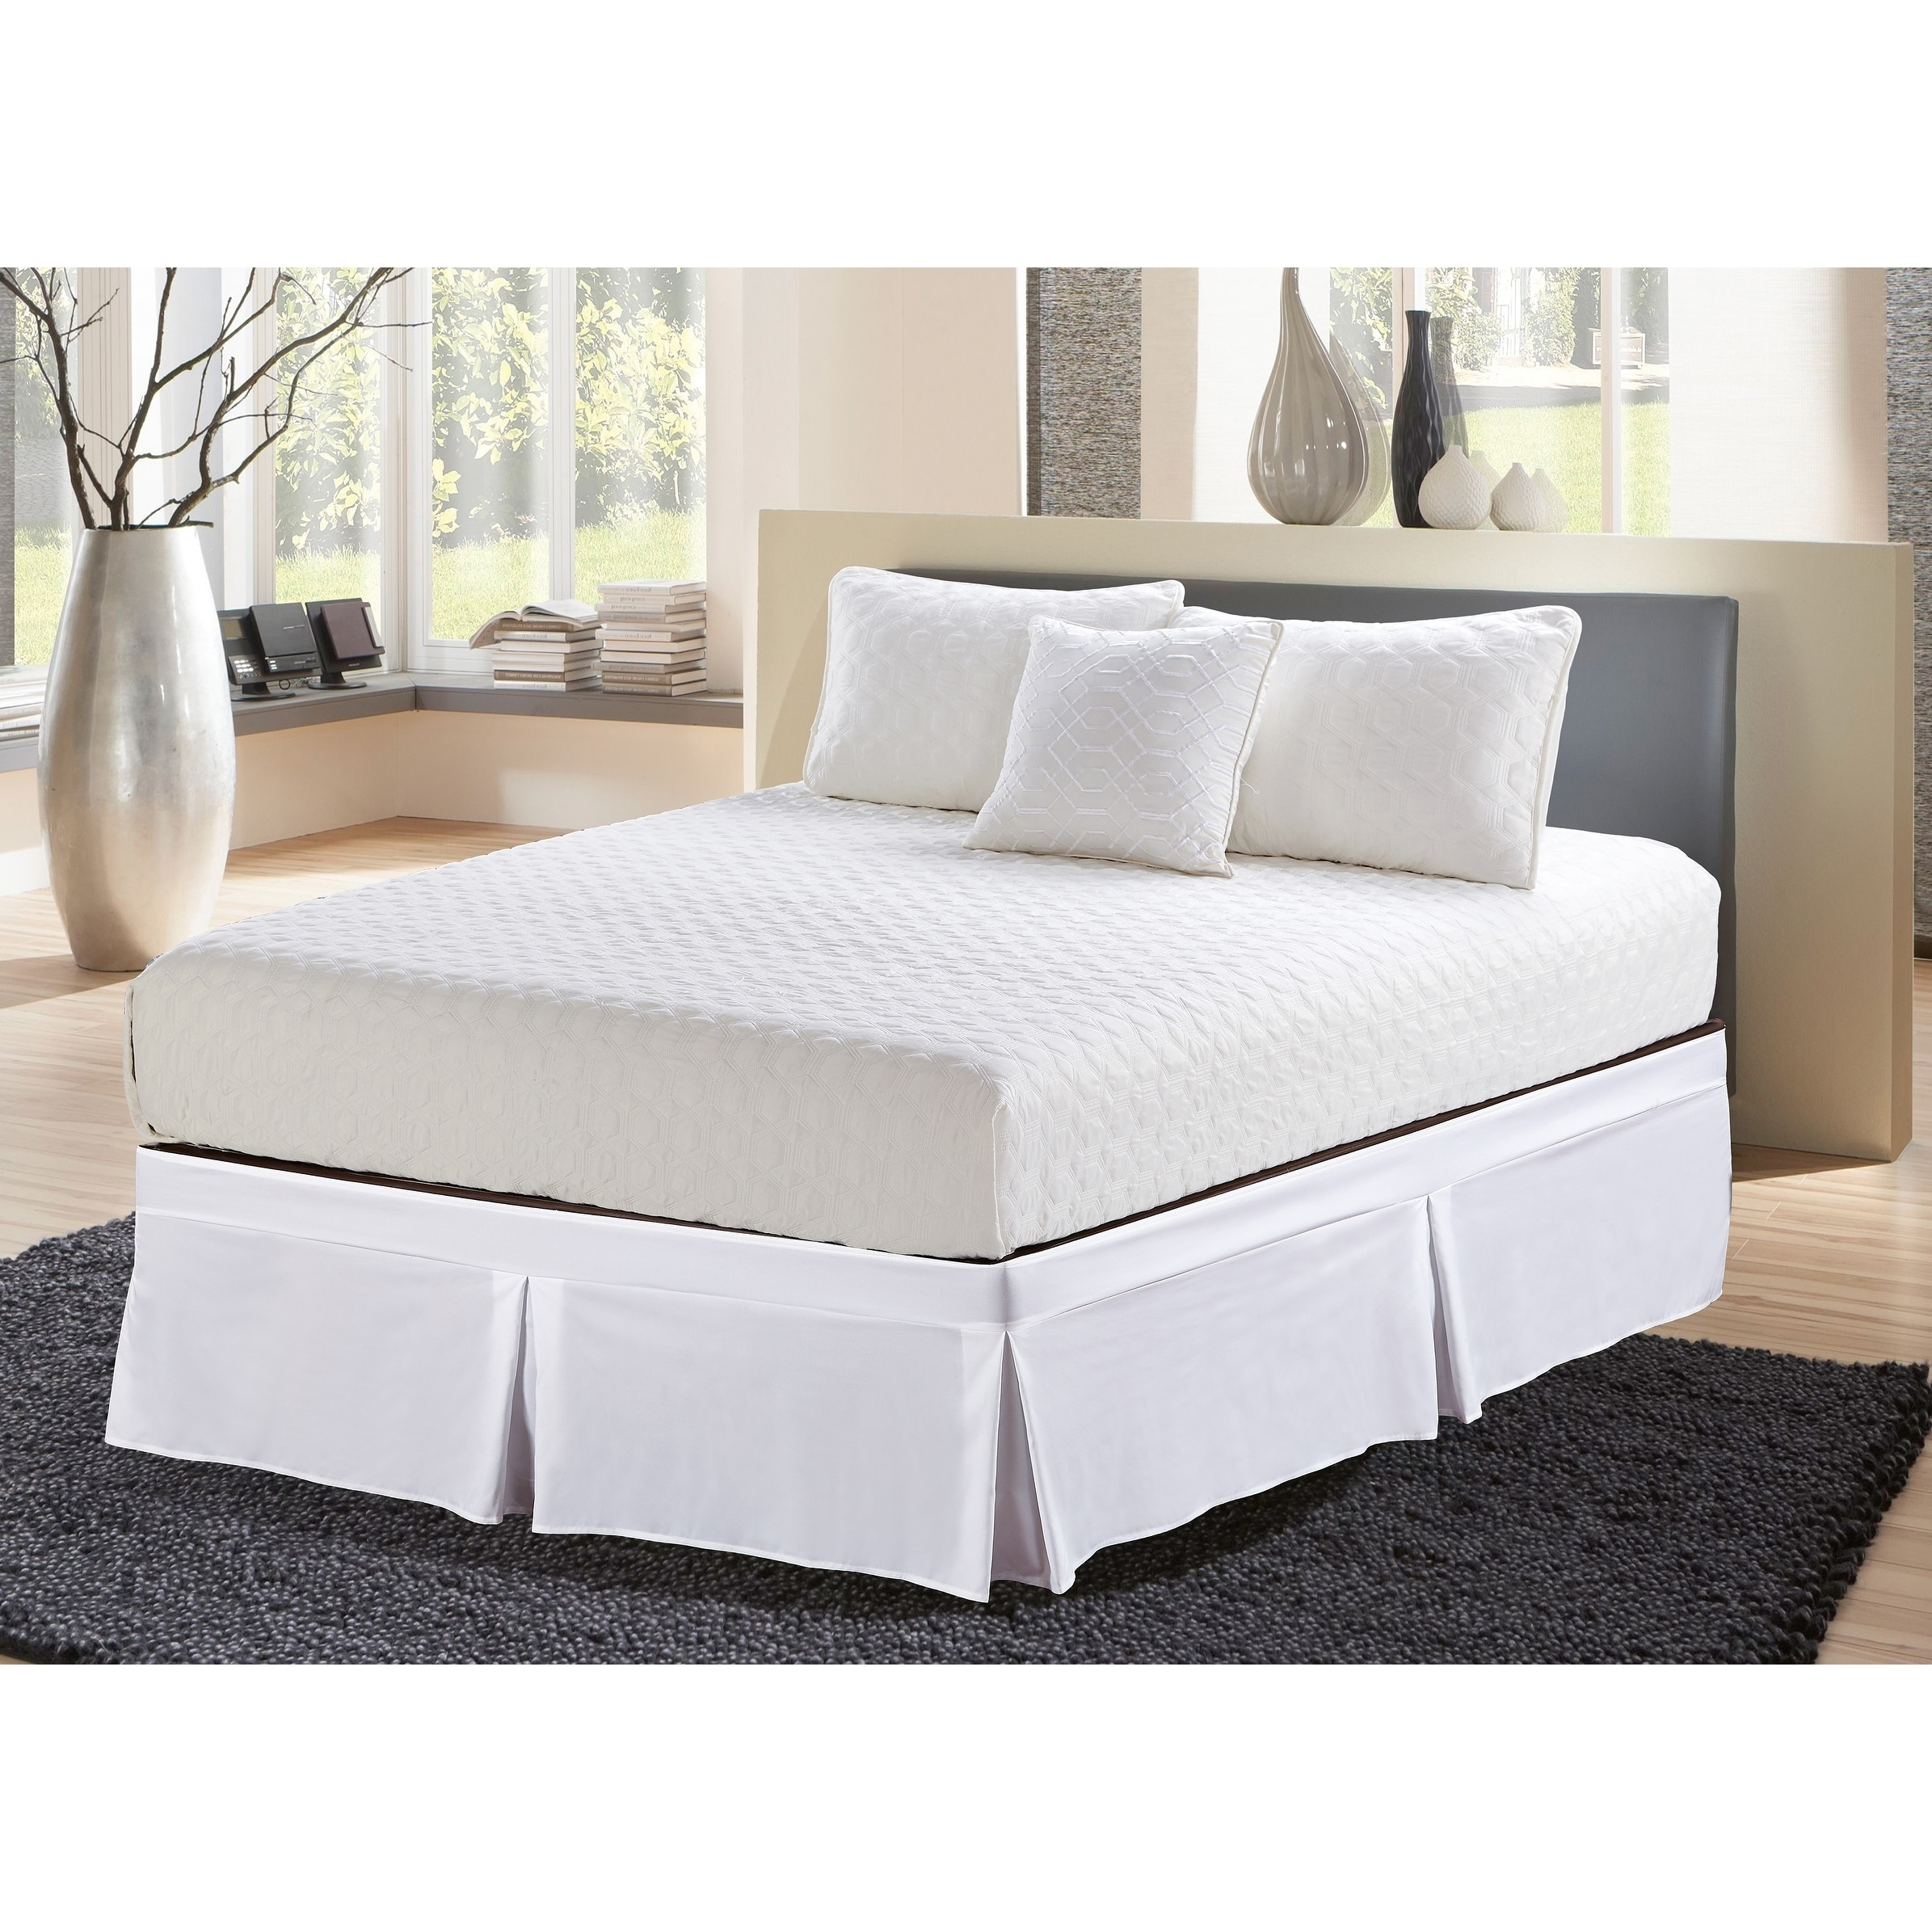 Wrap Around Style Tailored Bed Skirt 16 Drop On Sale Overstock 18062517